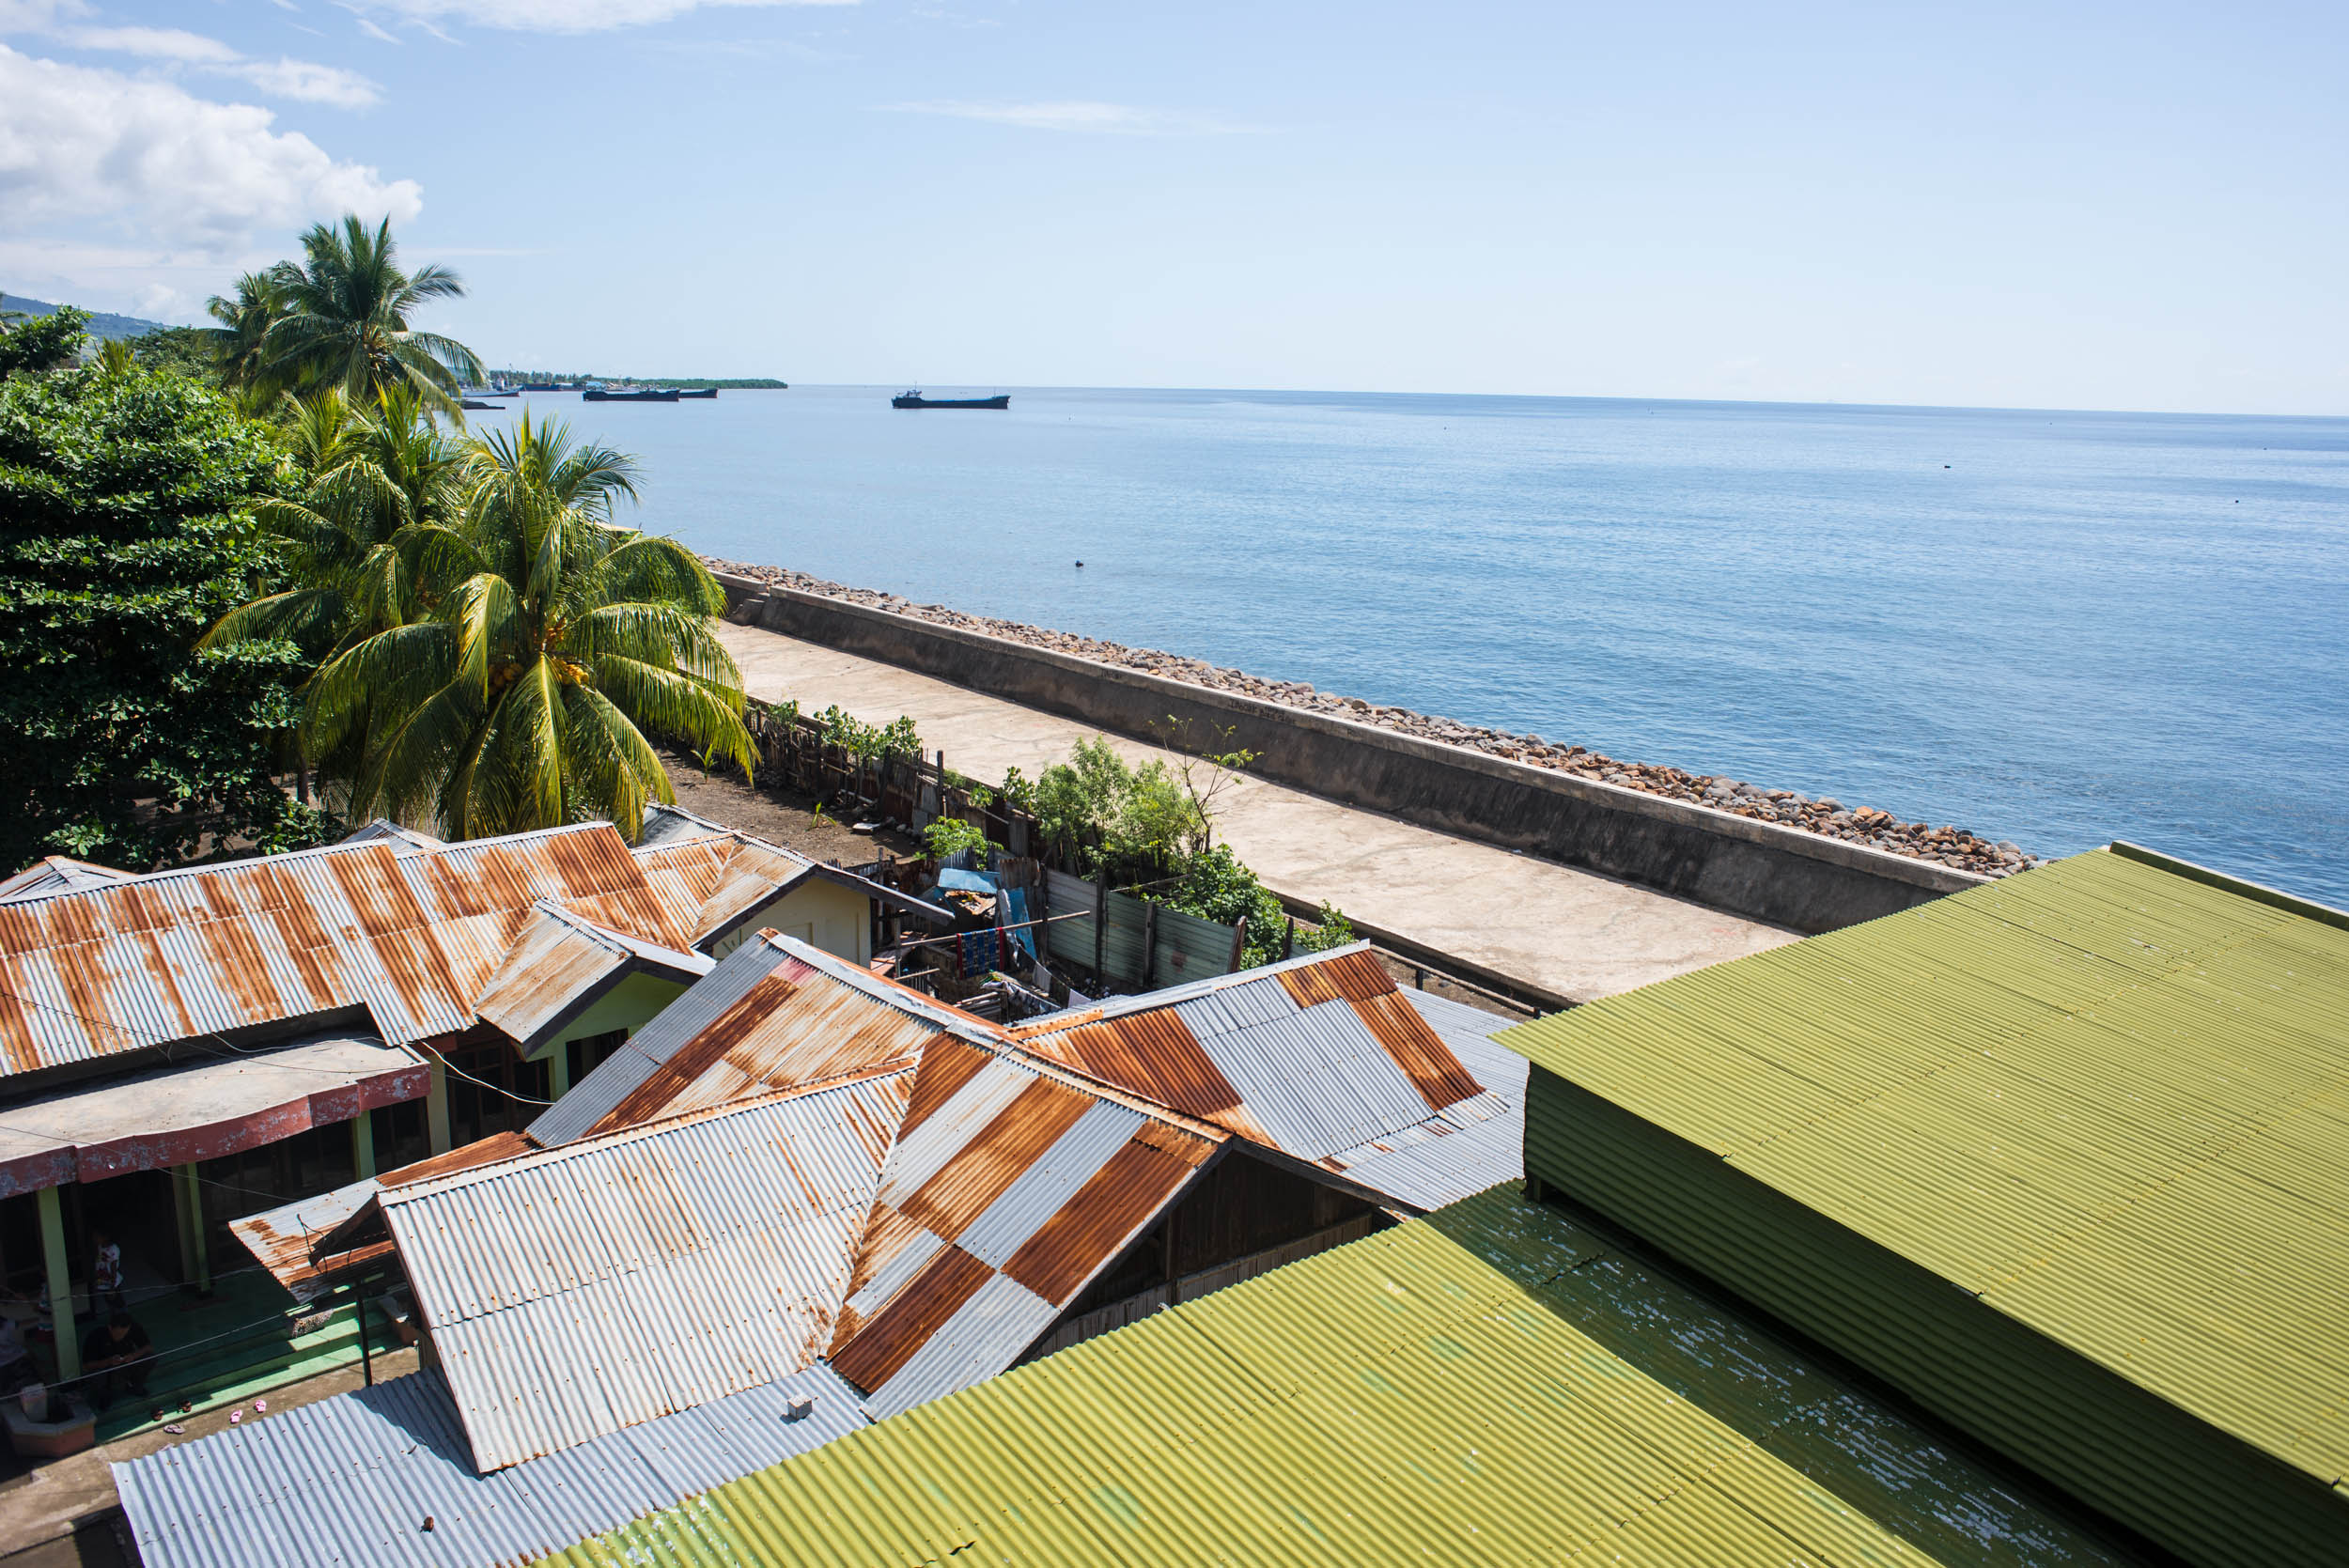 Rooftops in Maumere